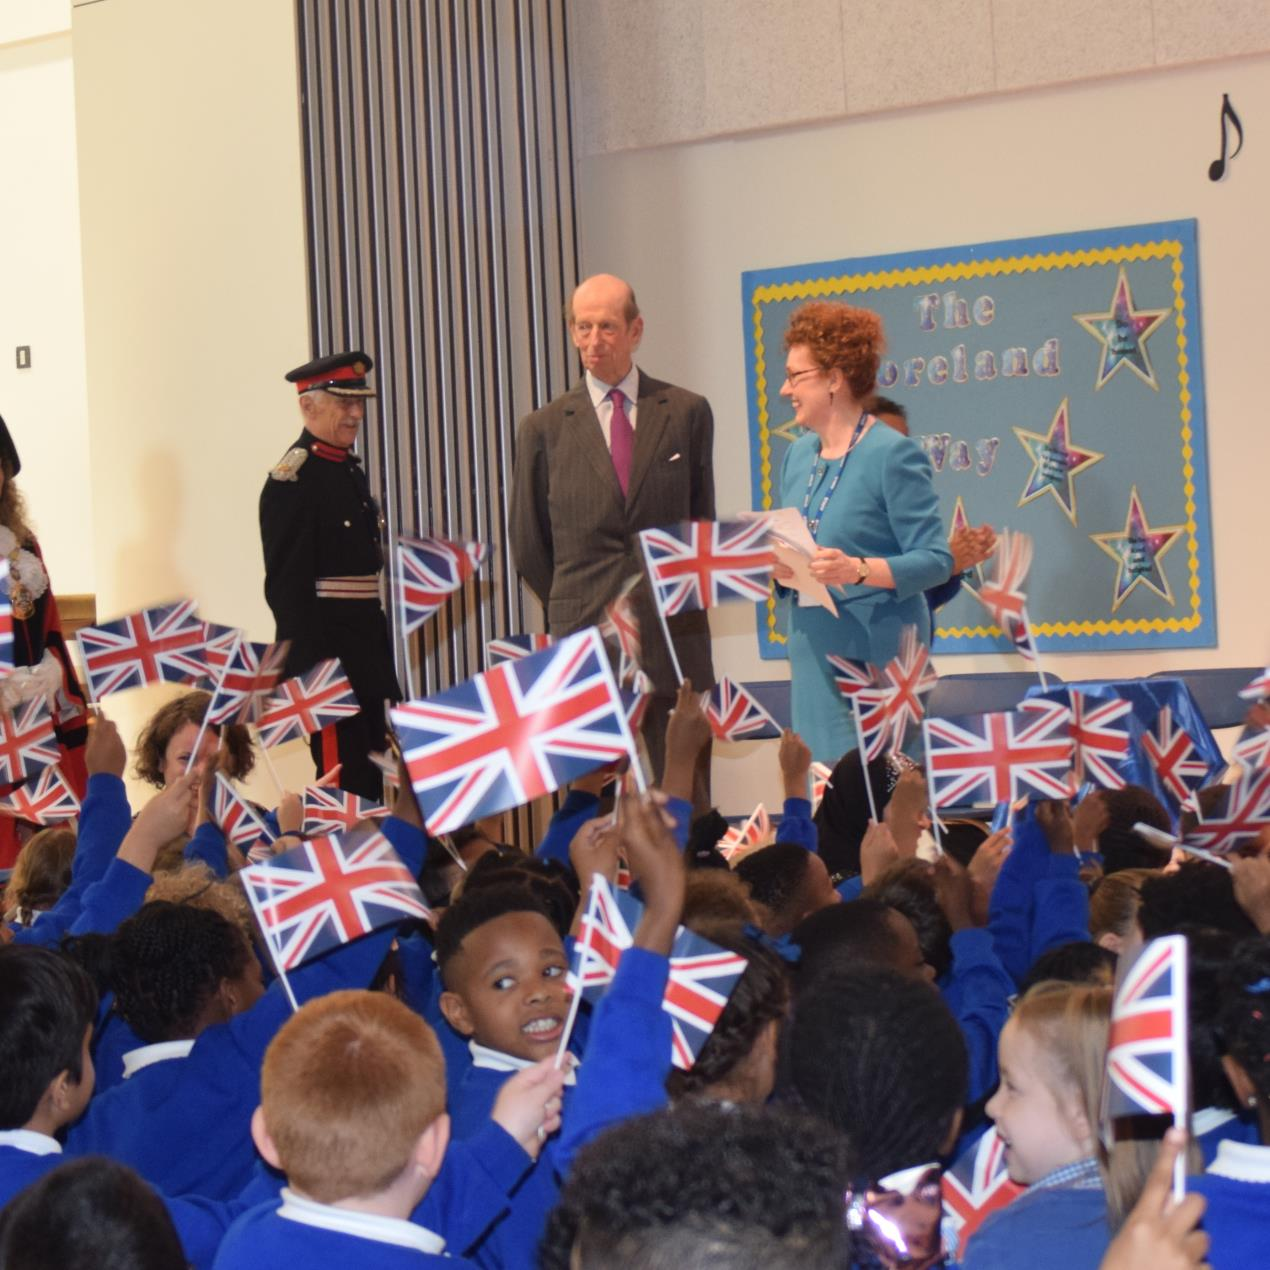 L-R is Lt. Col. Roderick Morriss, Deputy Lieutenant of Hackney, HRH The Duke Of Kent and Ann Dwulit, Moreland Primary School executive headteacher